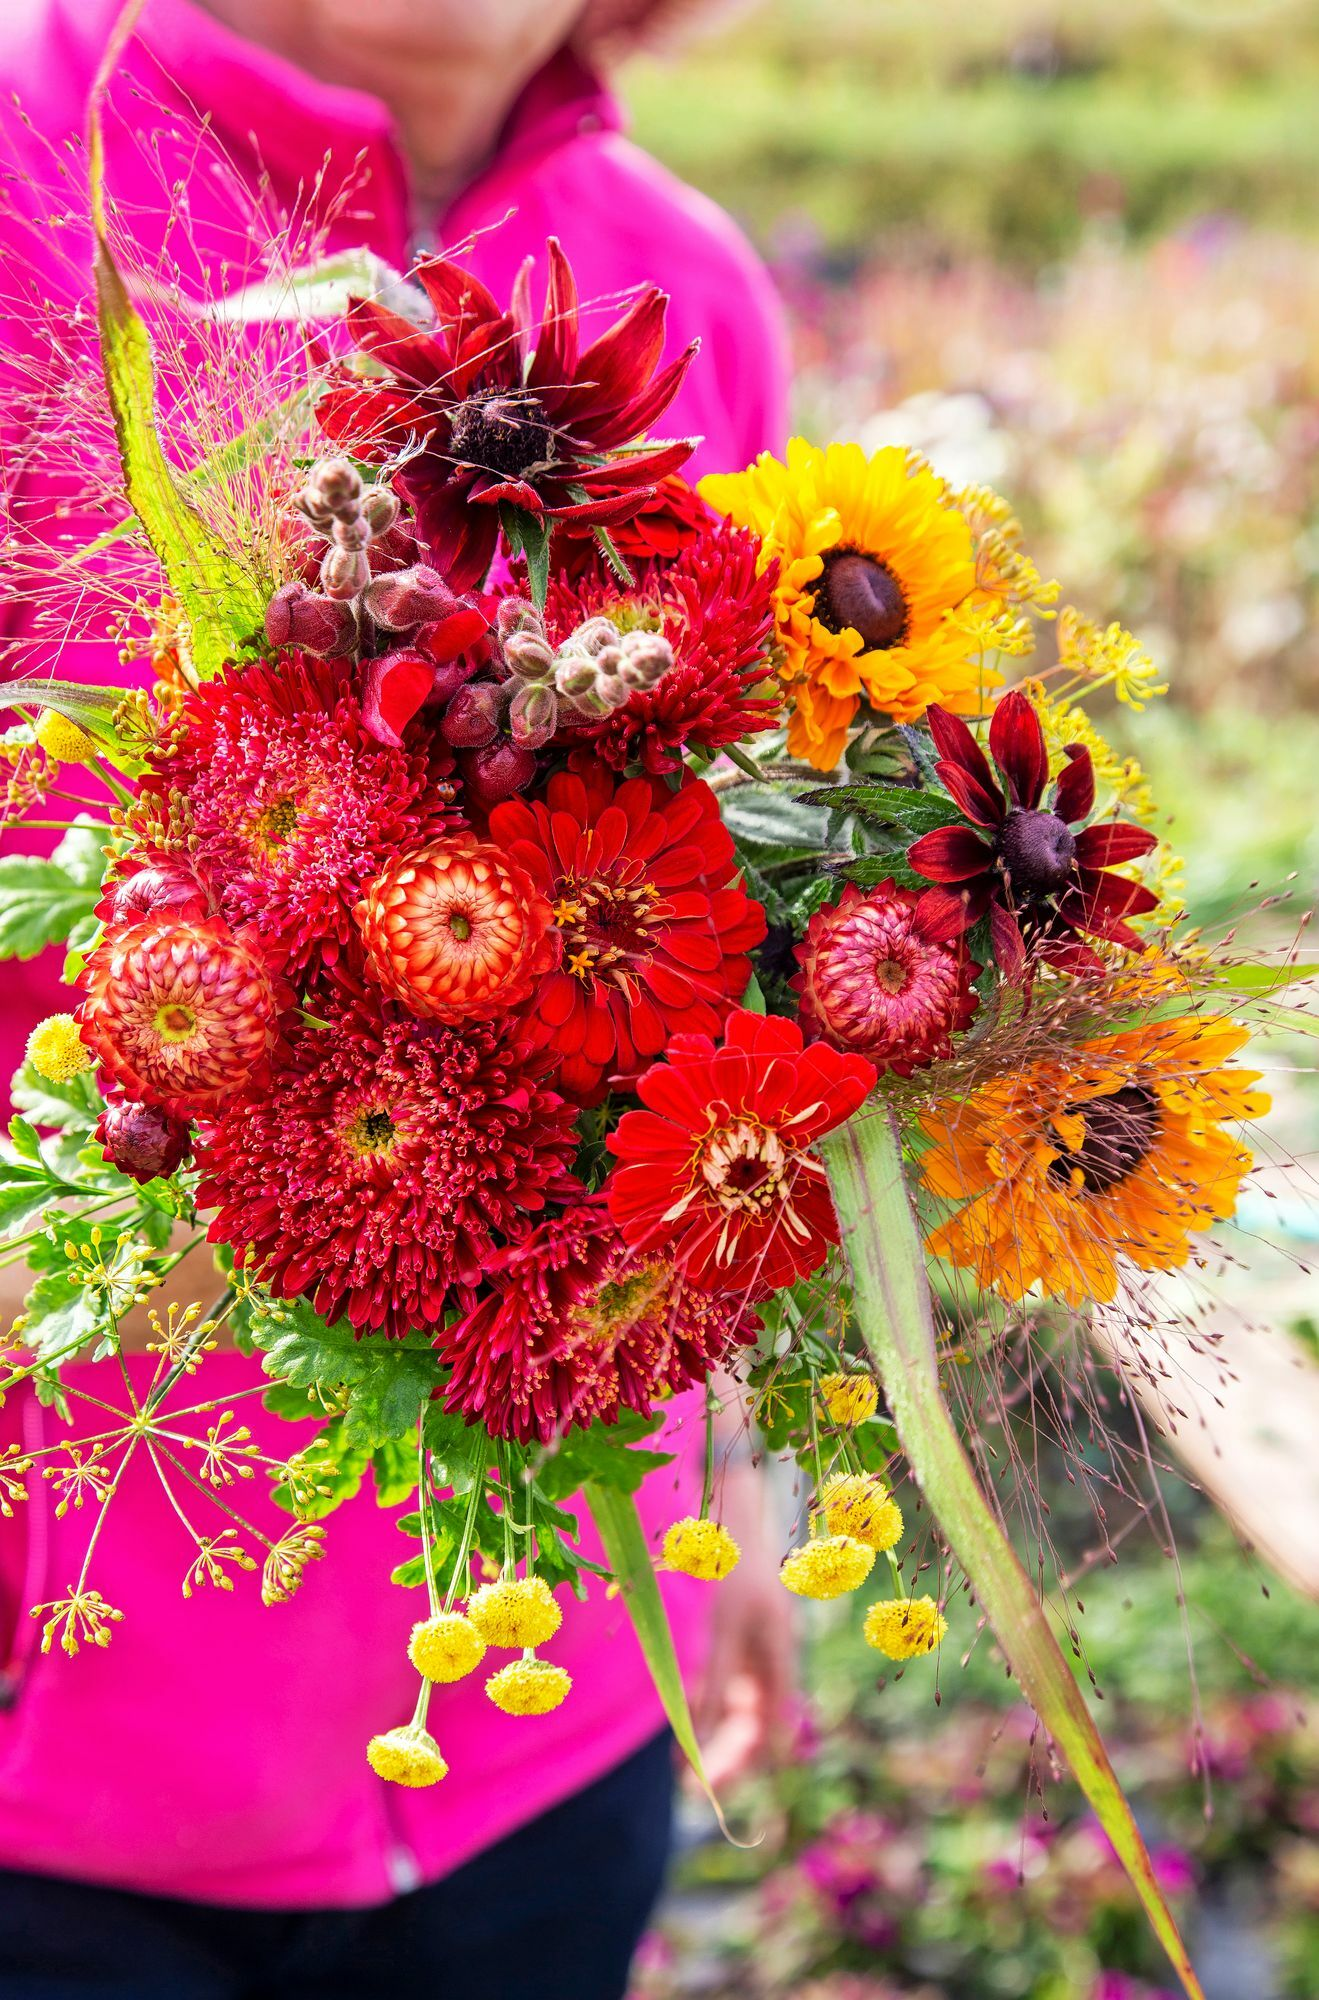 The flower field provides ingredients for abundant bouquets.  The red assault has been assembled with 'Copper Red' evergreens, 'Matador' asters, 'Benary Giant' throws, 'Goldilocks' summer day hats, lion weavers and 'Fountain' millet.